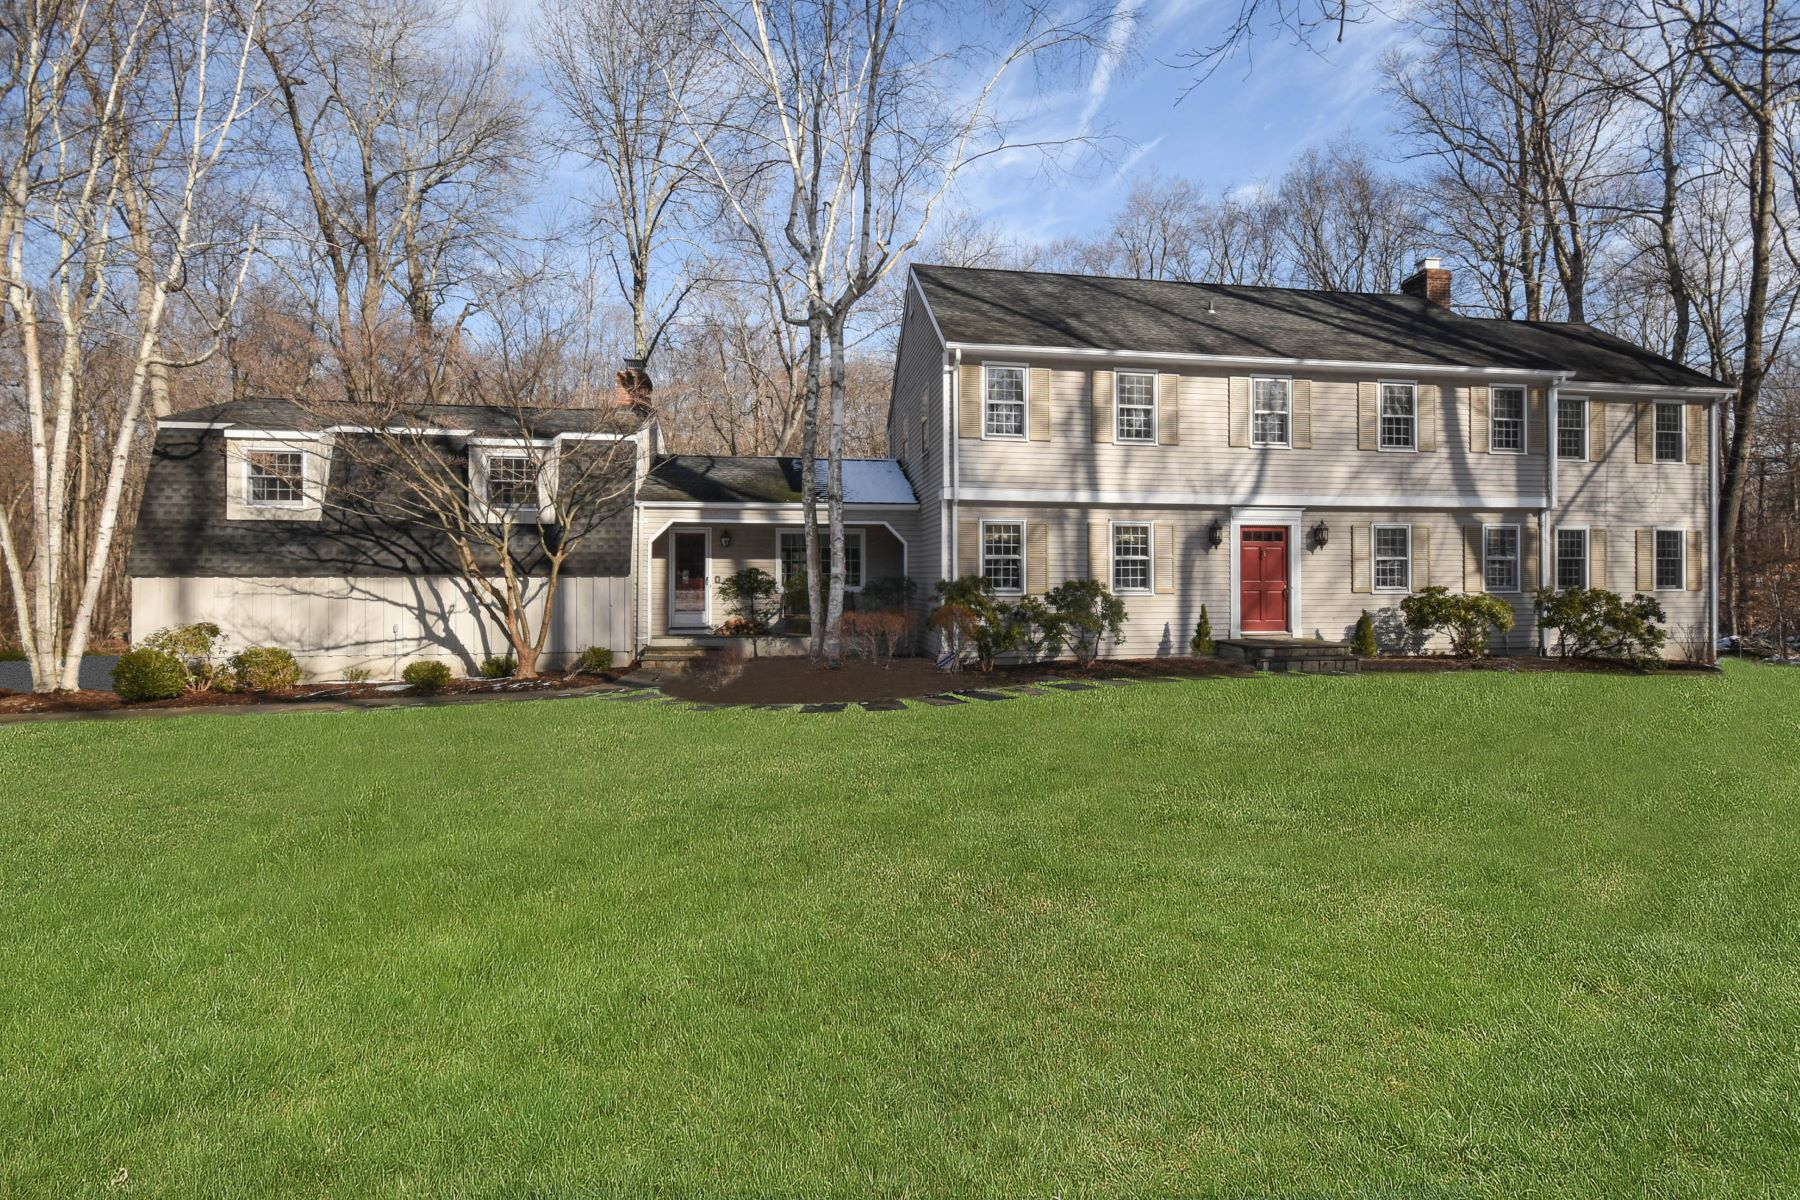 Single Family Home for Sale at Lower Weston 3 Narrow Brook Road Weston, Connecticut 06883 United States